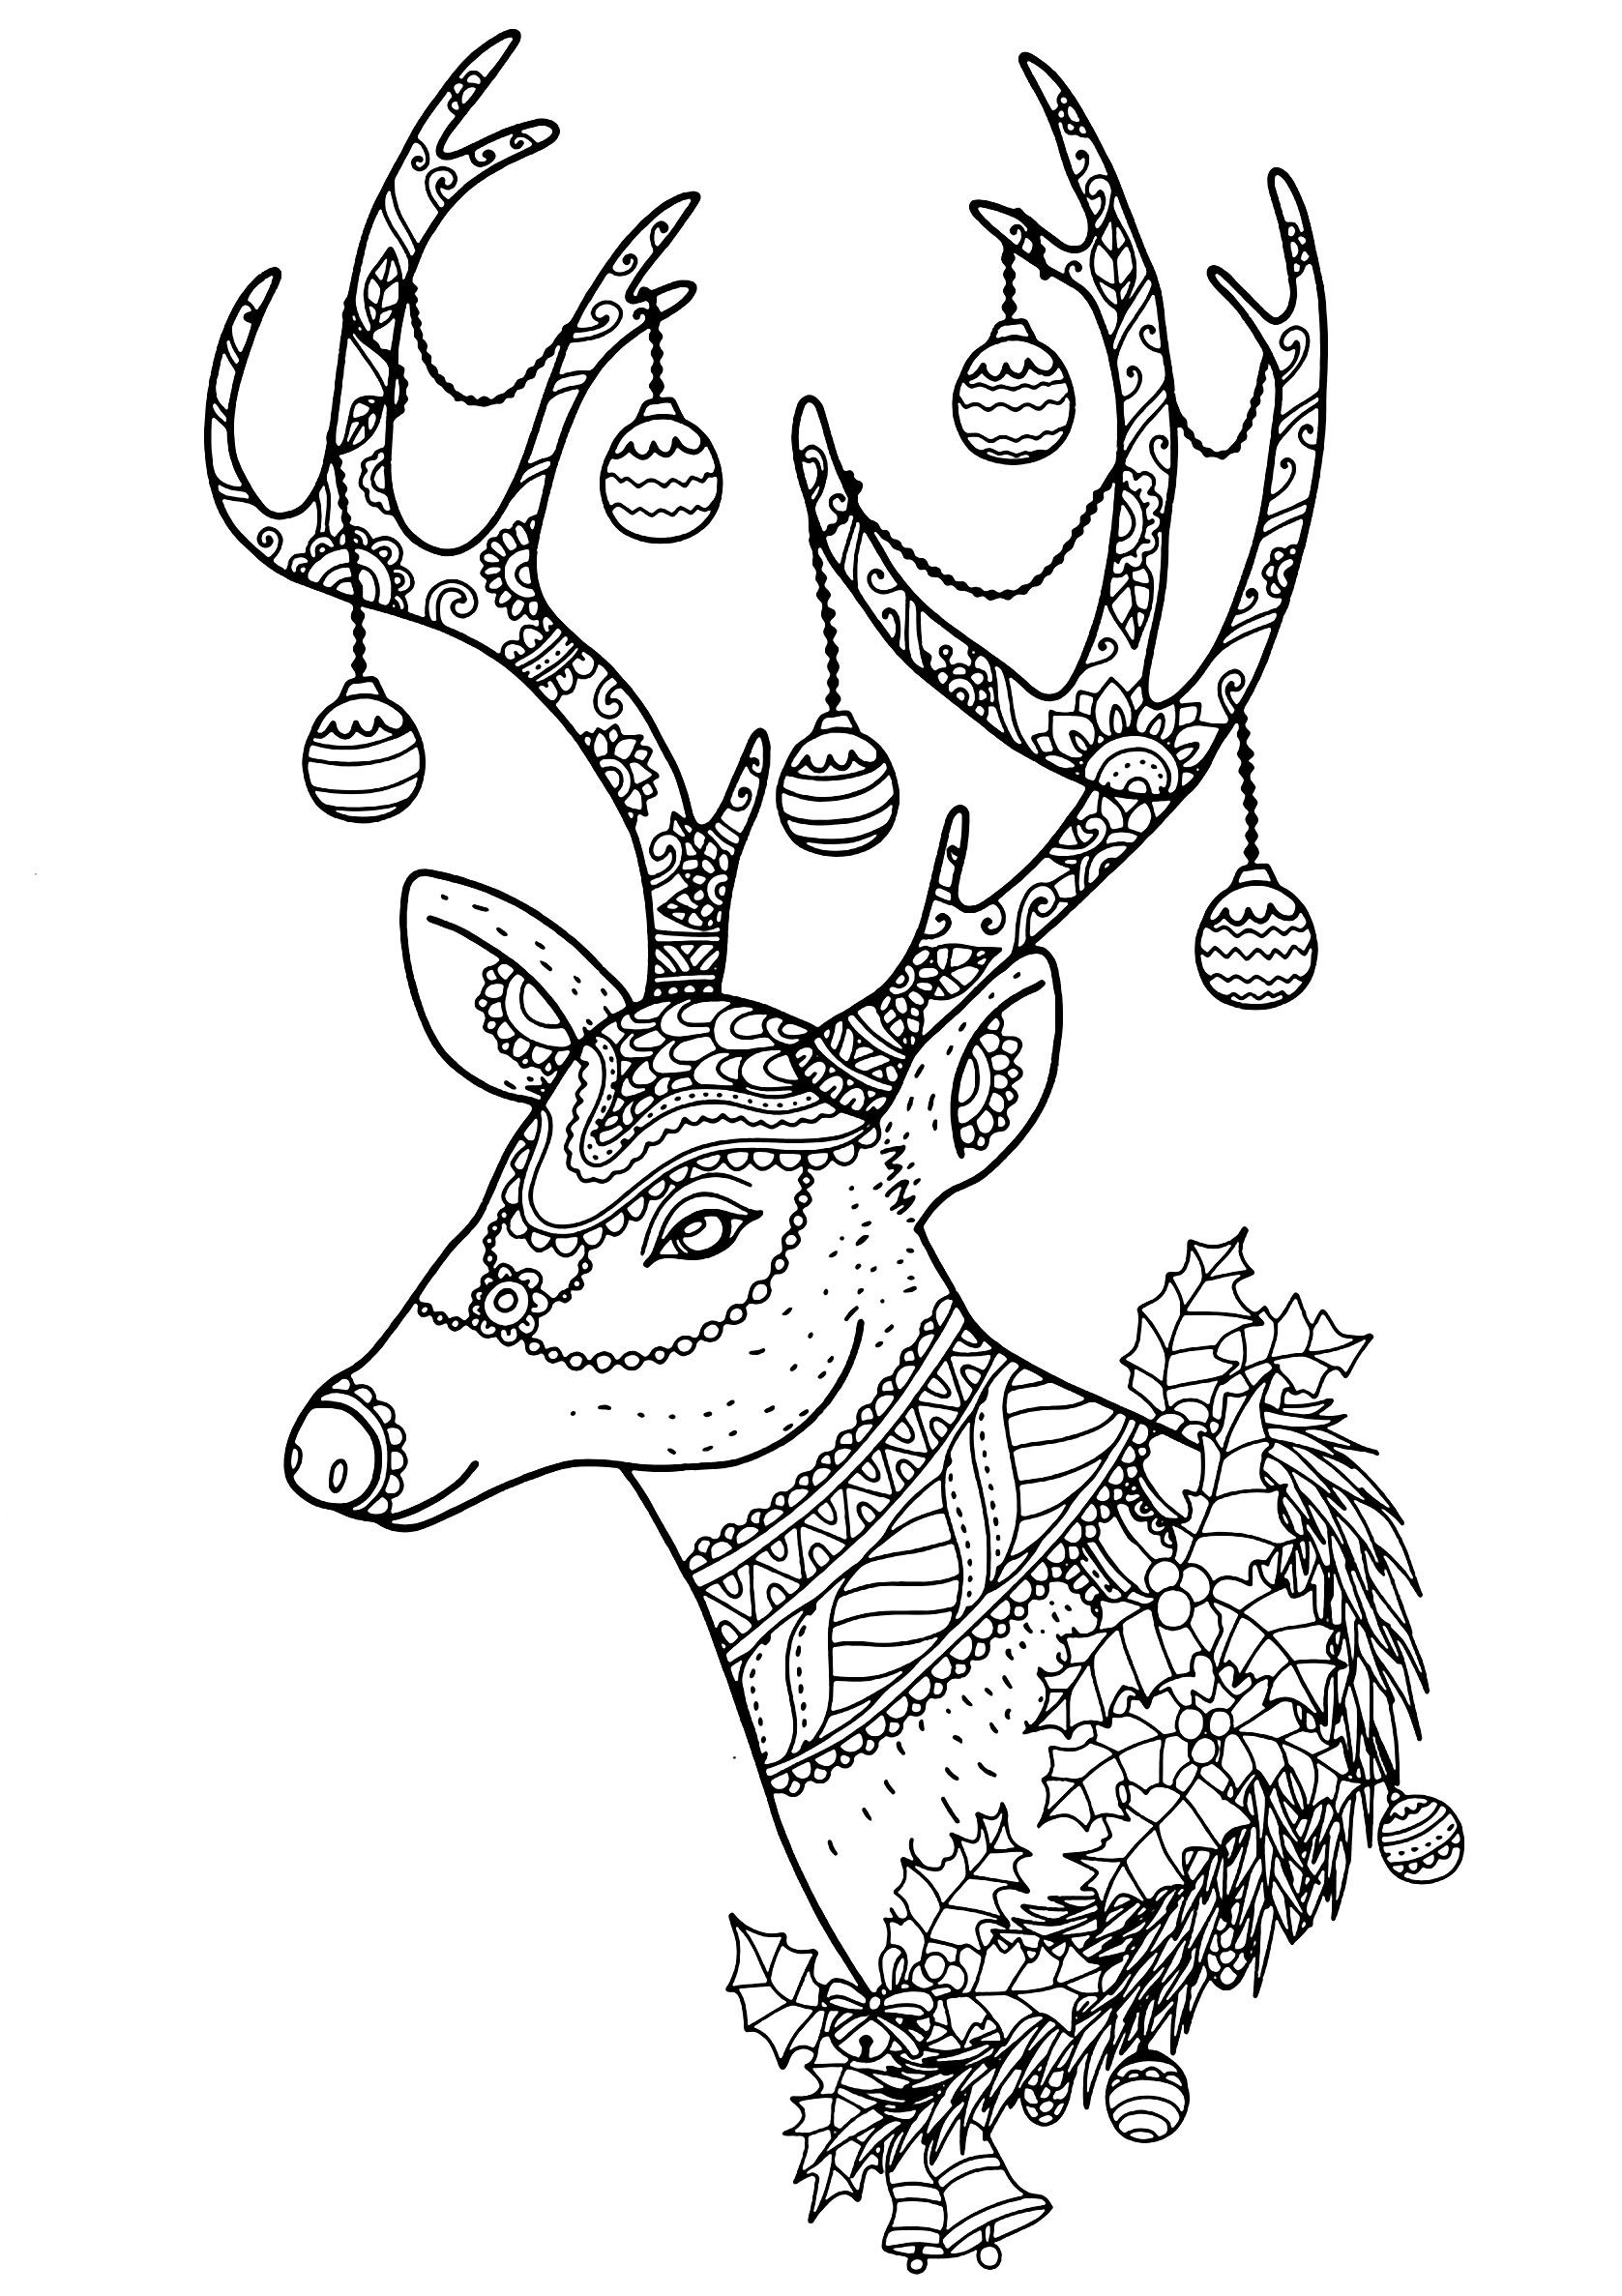 free online coloring pages for adults christmas 10 free printable holiday adult coloring pages coloring pages coloring adults online free christmas for